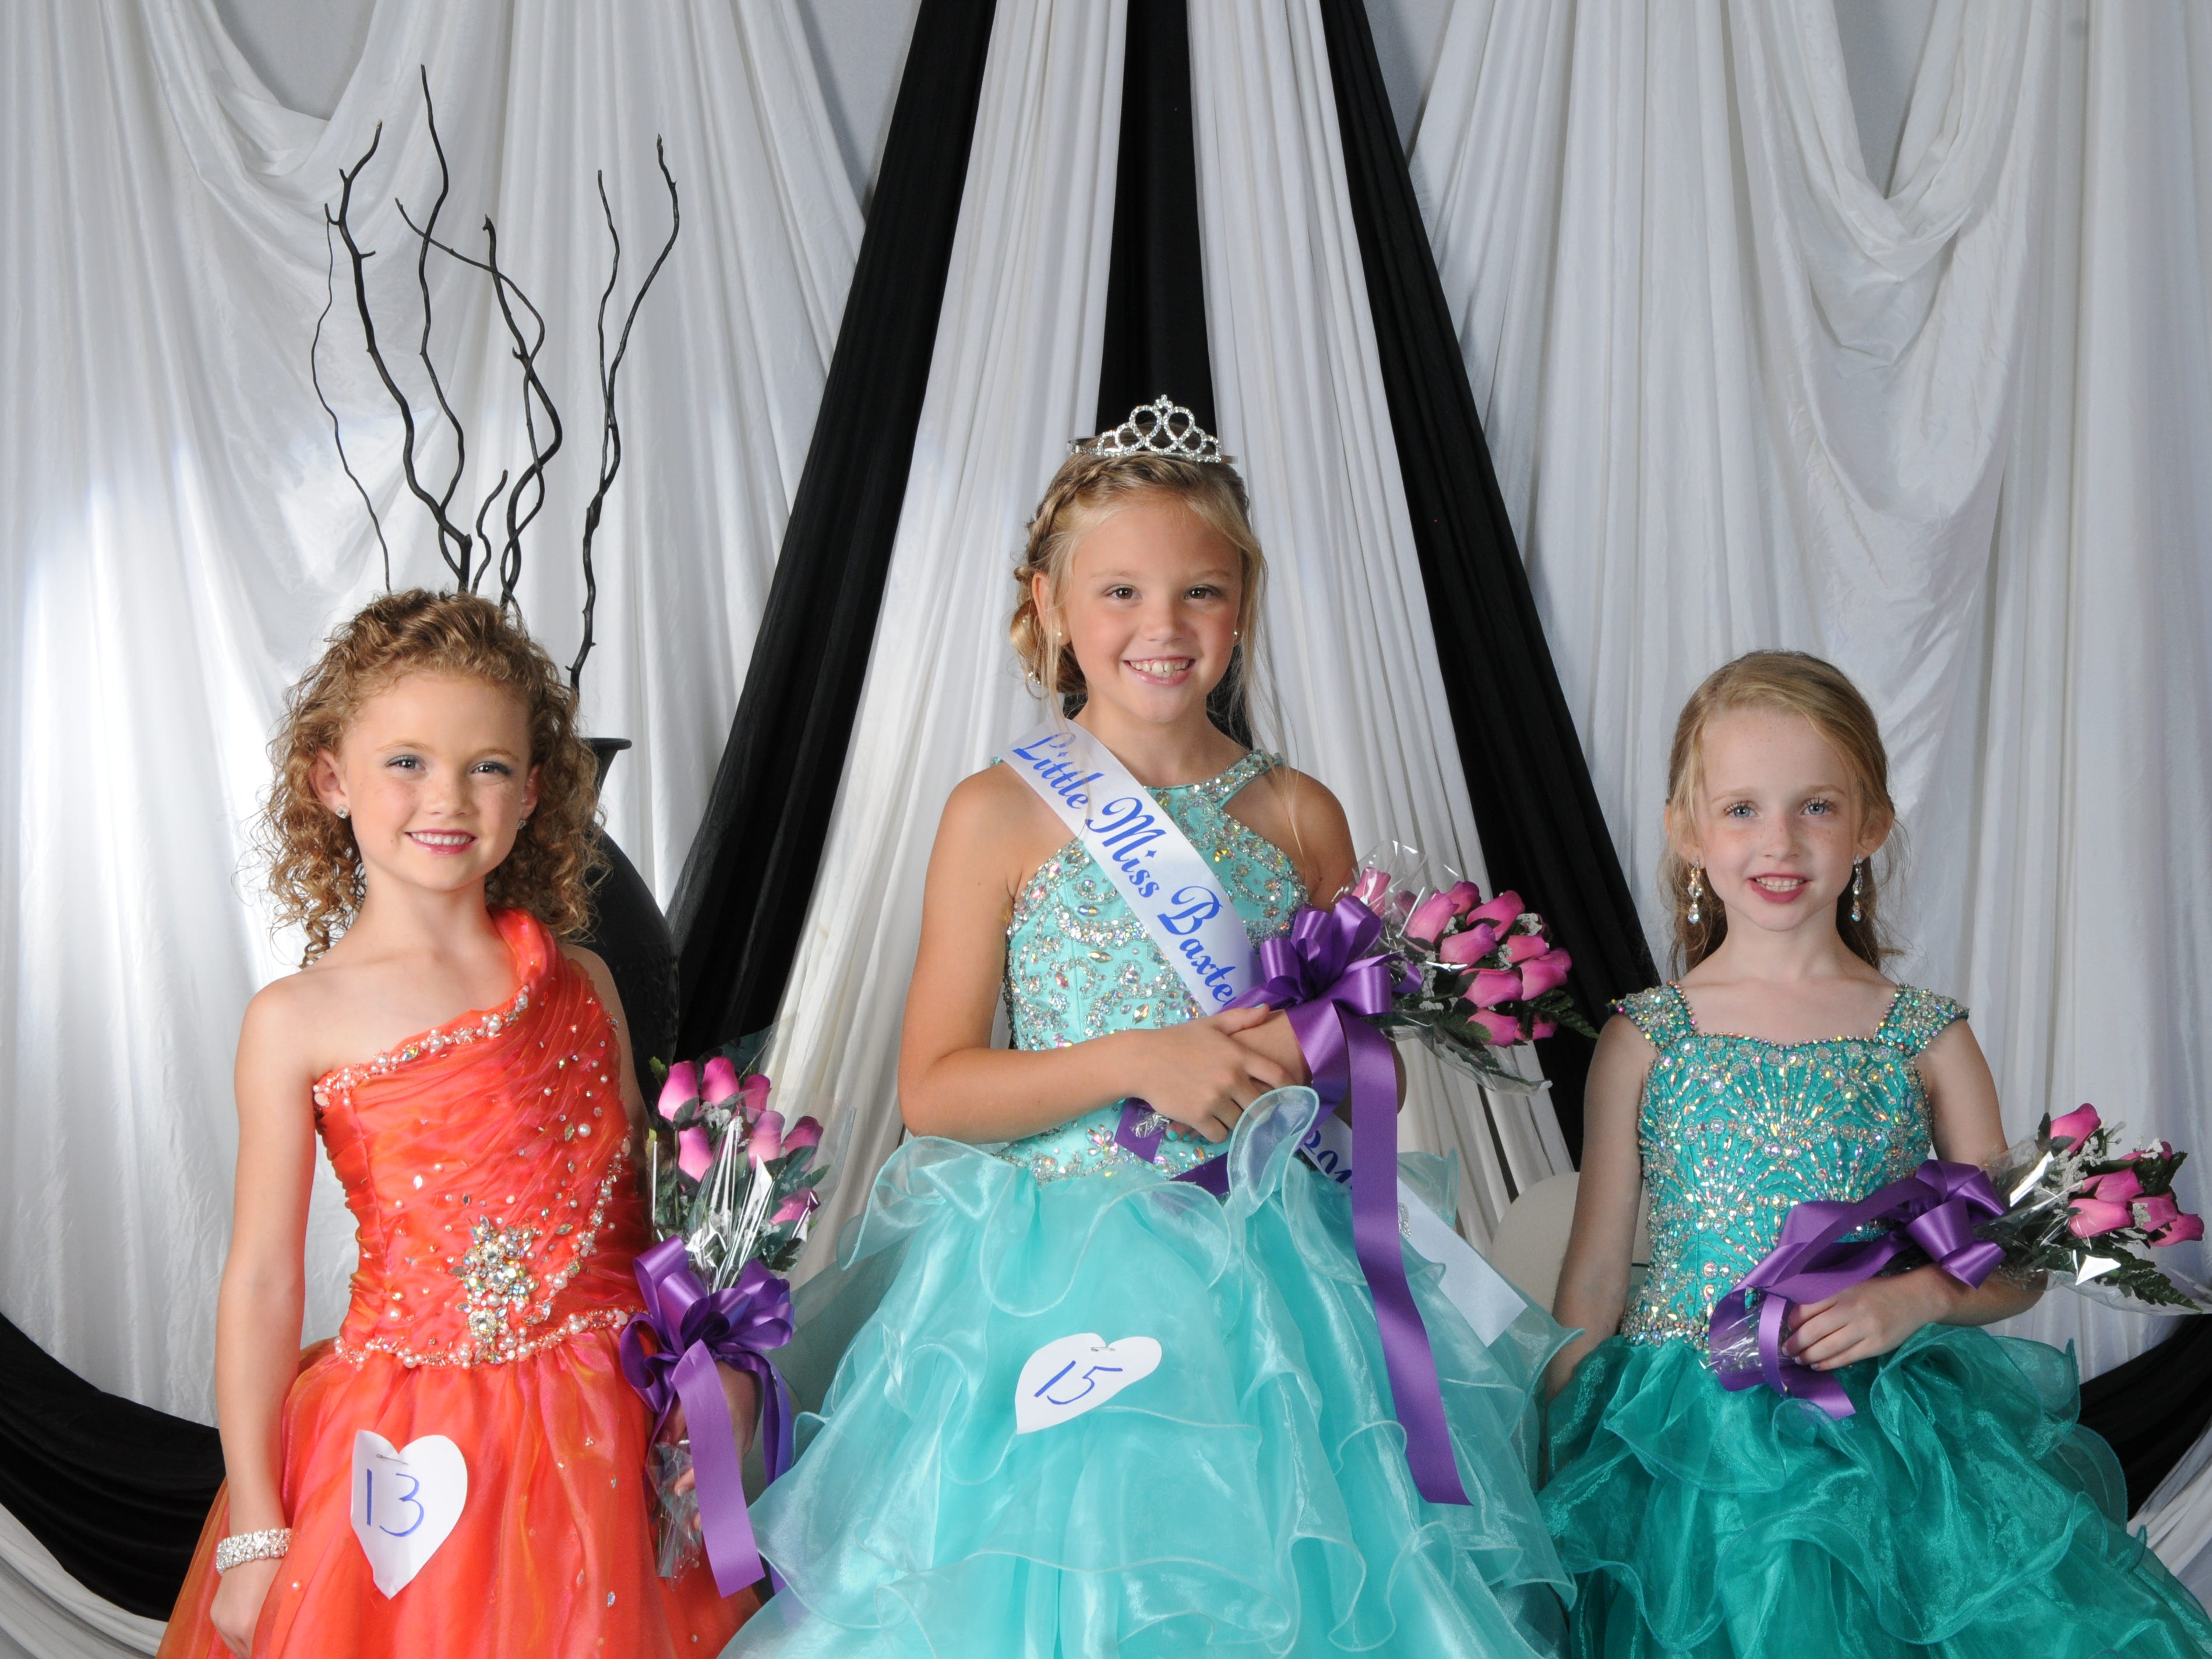 Ally Wheeler (center), daughter of Dusty and Monica Wheeler of Mountain Home, was named Little Miss Baxter County at the annual Baxter County Fair Pageant on Saturday at Dunbar Auditorium. Marlee Dewey (right), daughter of Jeremy and Sarah Dewey of Mountain Home, was named first alternate; Chloe Wilson (left), daughter of Jarret and Jill Wilson of Mountain Home, was named second alternate; and Lindy Lueck (not pictured), daughter of Nathan and Monica Lueck of Mountain Home, was the People's Choice winner.